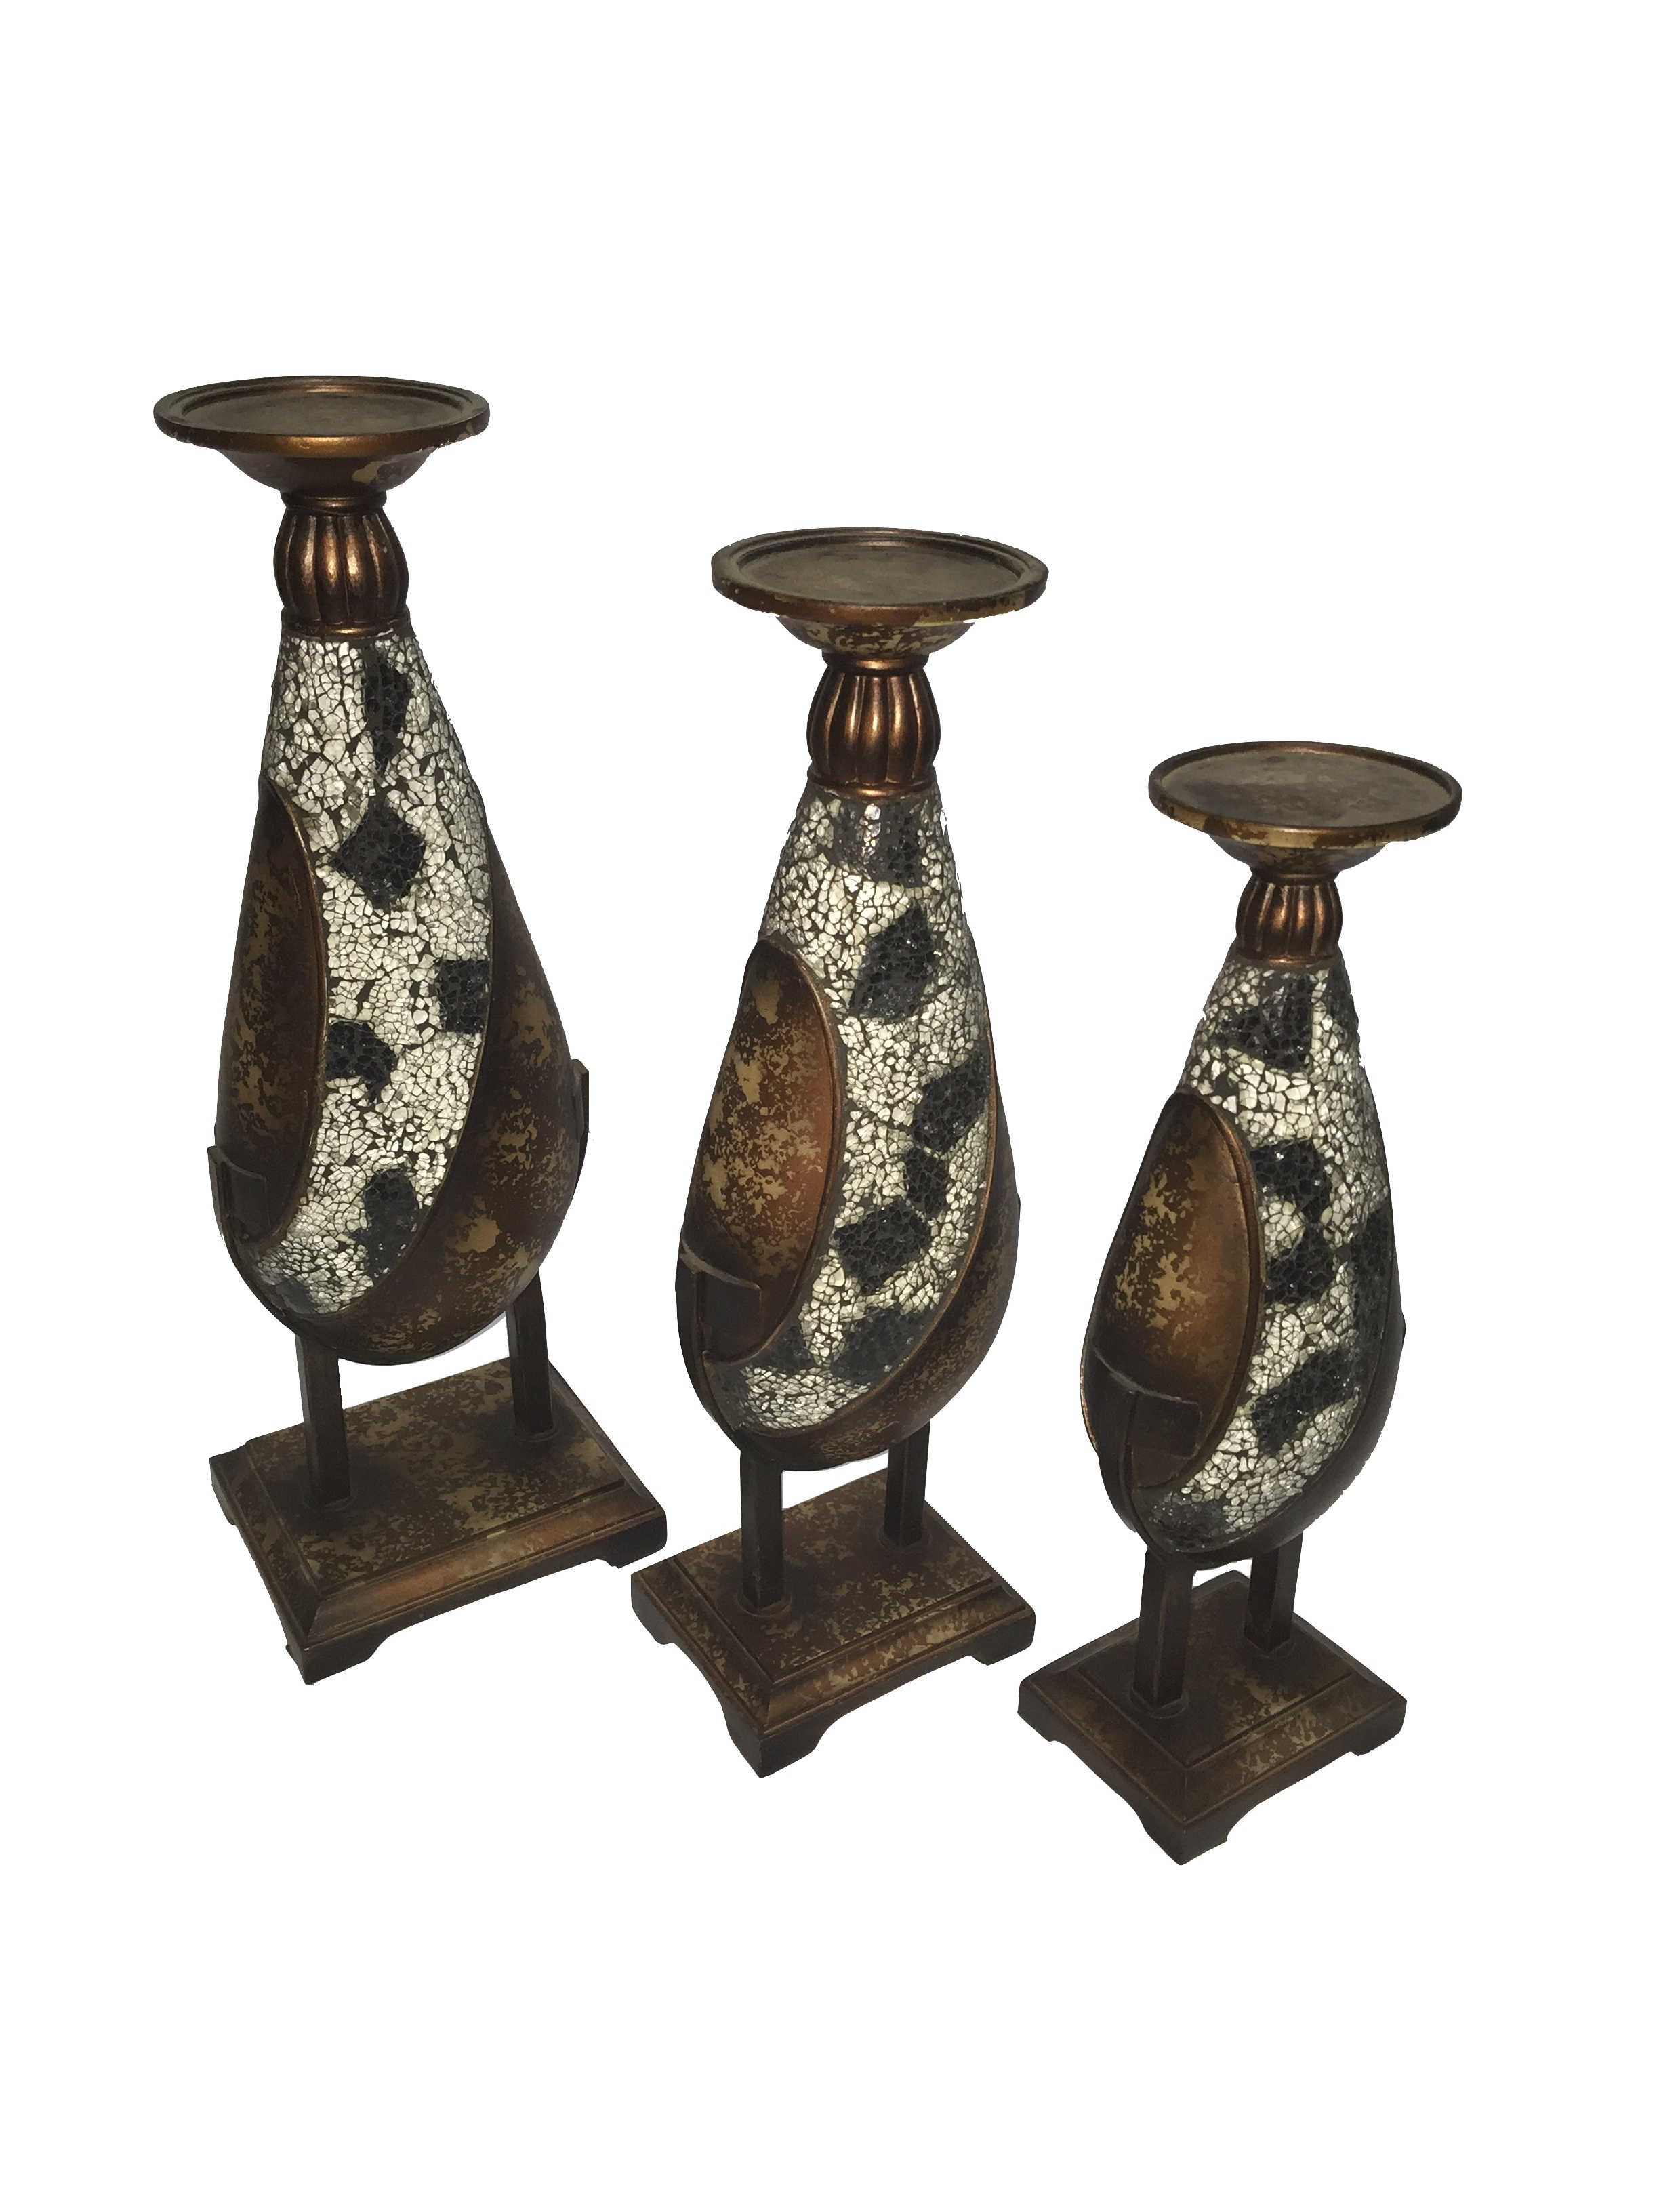 STA-C120 Candle Holder Set